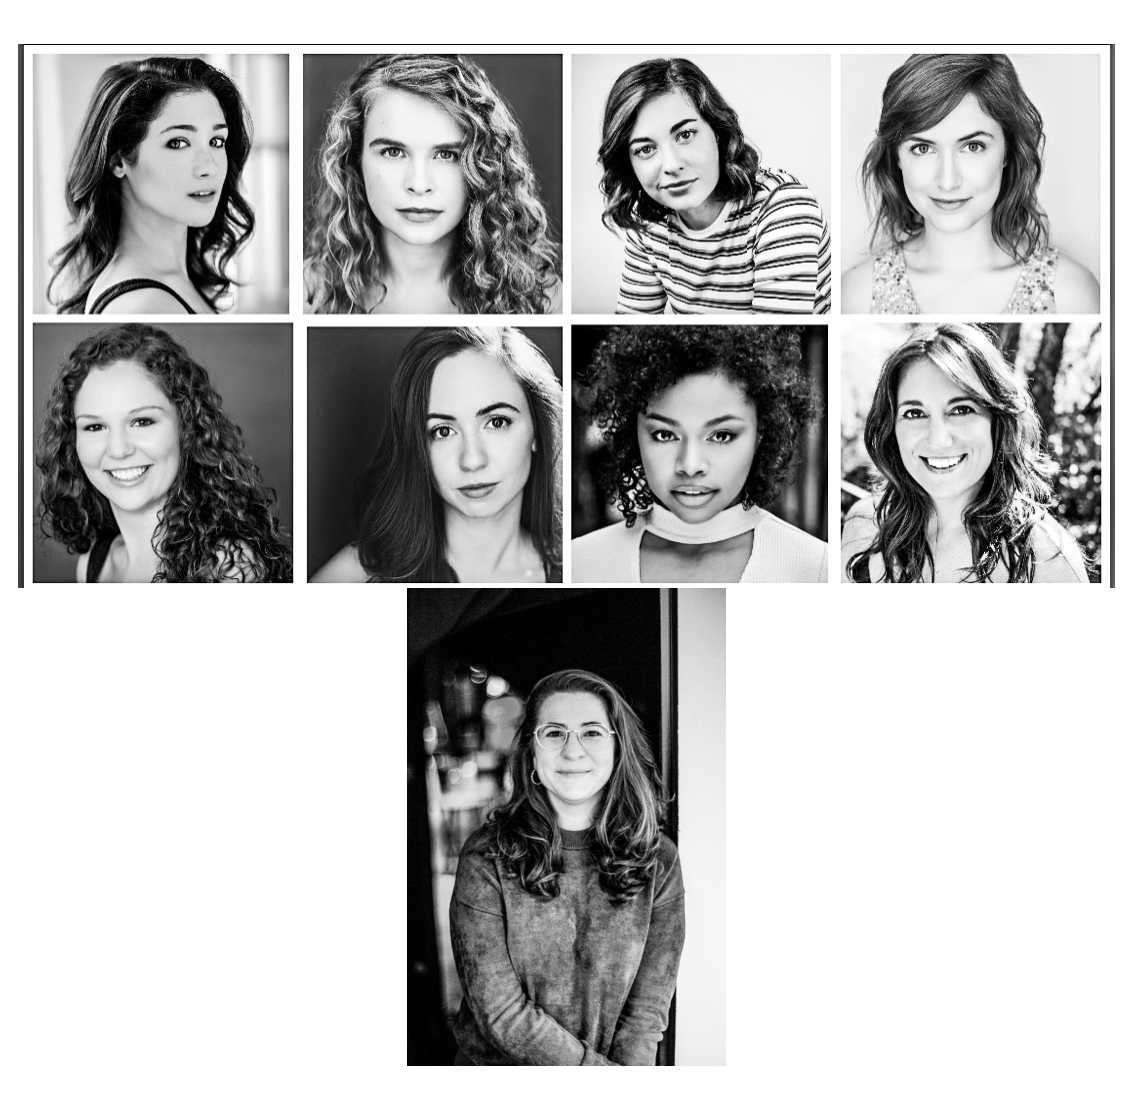 """""""The Jersey Devil Doesn't Exist"""" Cast Announcement - Makaela Shealy, Ella Mora*, Claire D'Angelo, Anna Clare Kerr, Brenna Sweet, Jac Ford, Samanthia Nixon, Jenny Bechem* These actors appear courtesy of Actors Equity AssociationWritten by Jess Honovich 